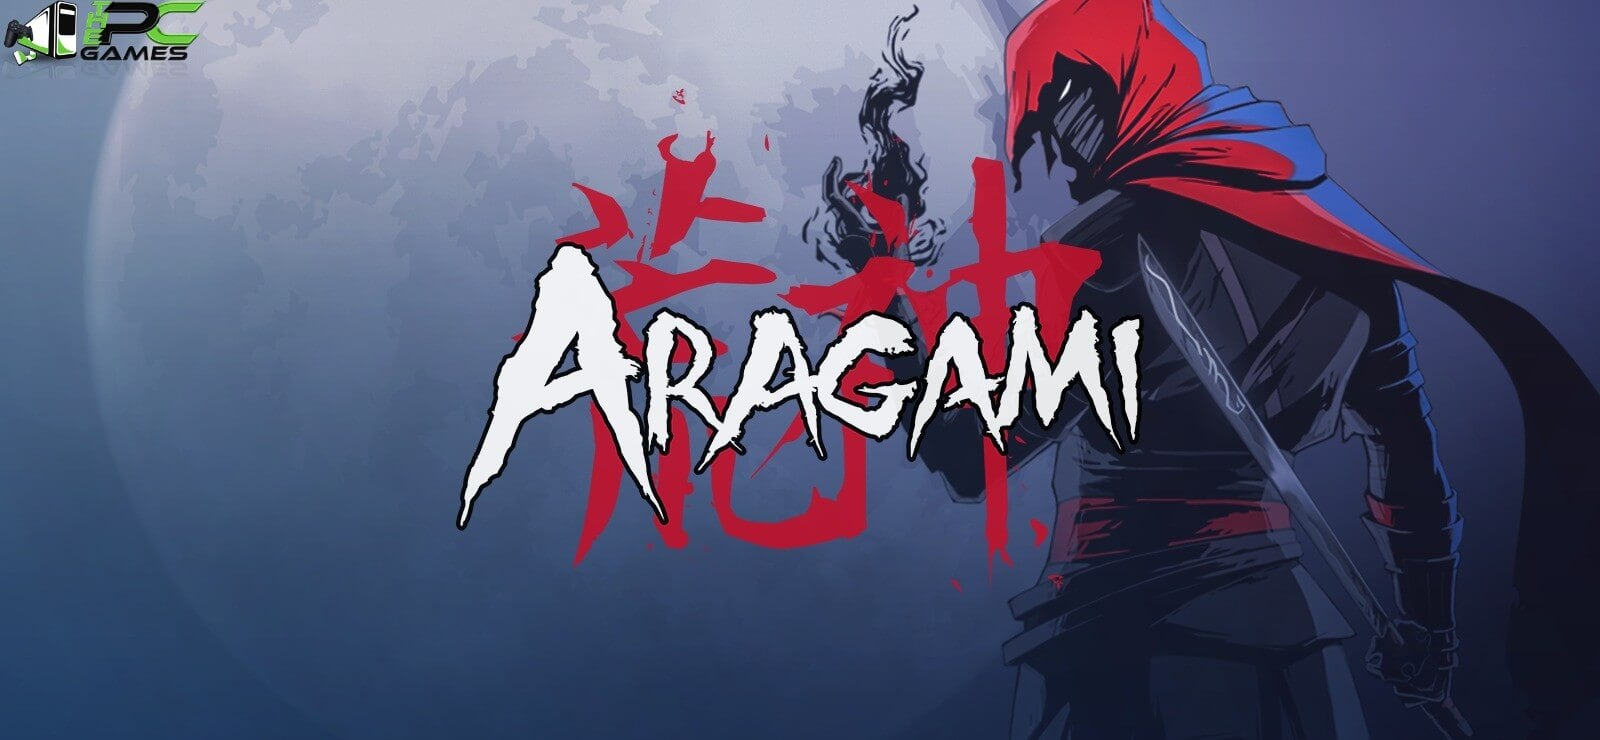 Aragami pc game free download